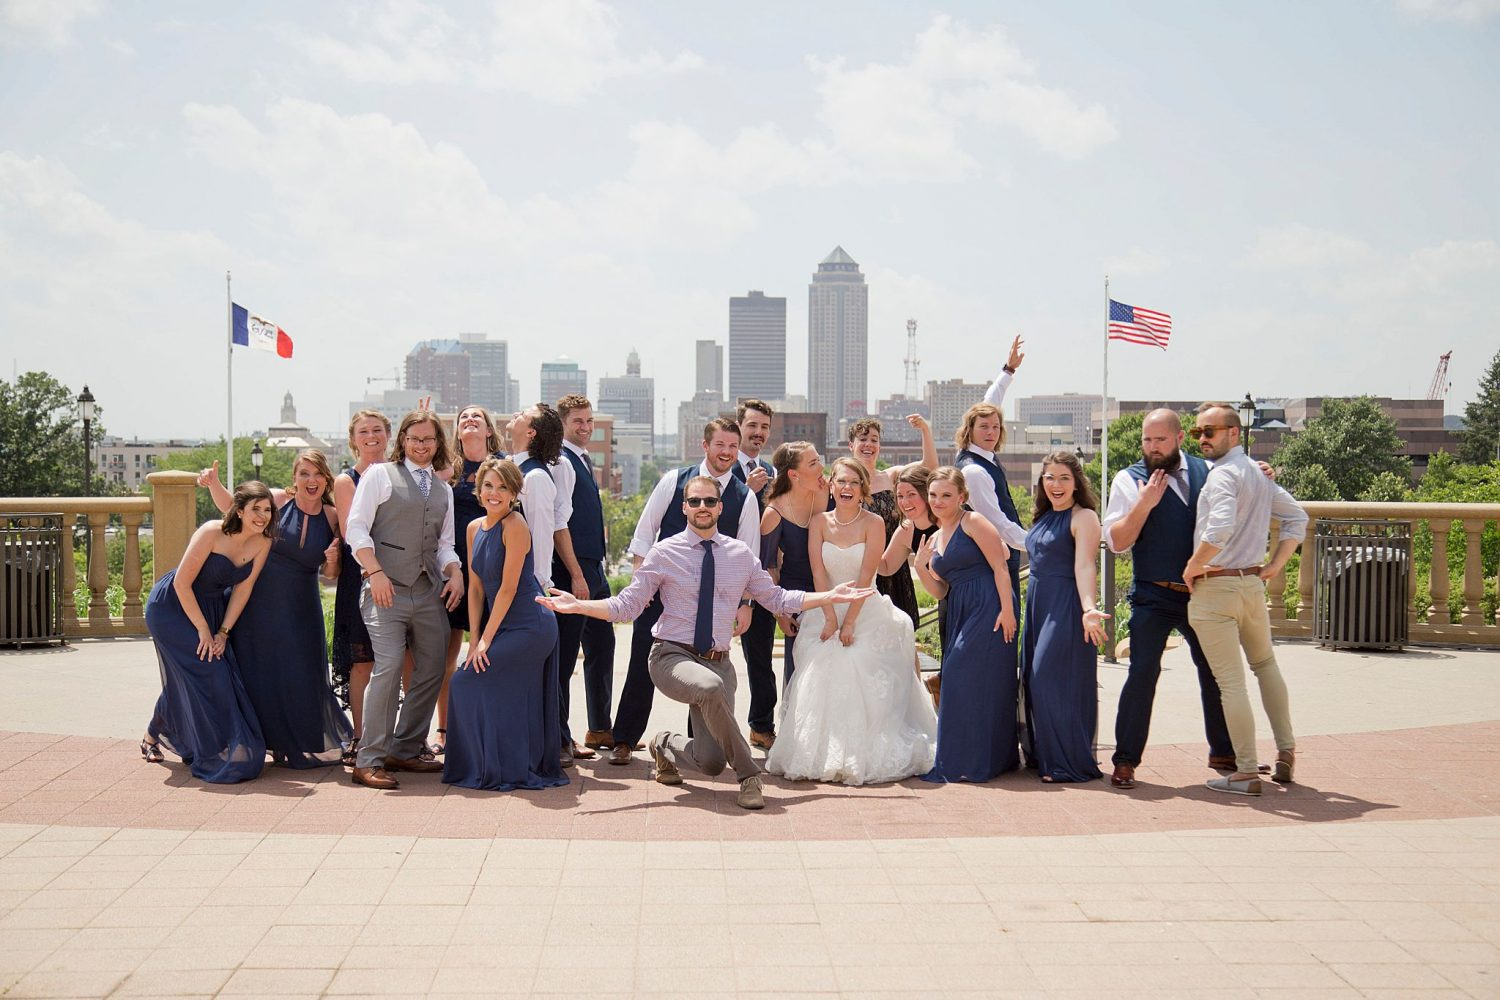 The bridal party pose for a goofy group picture with the Des Moines skyline behind them.